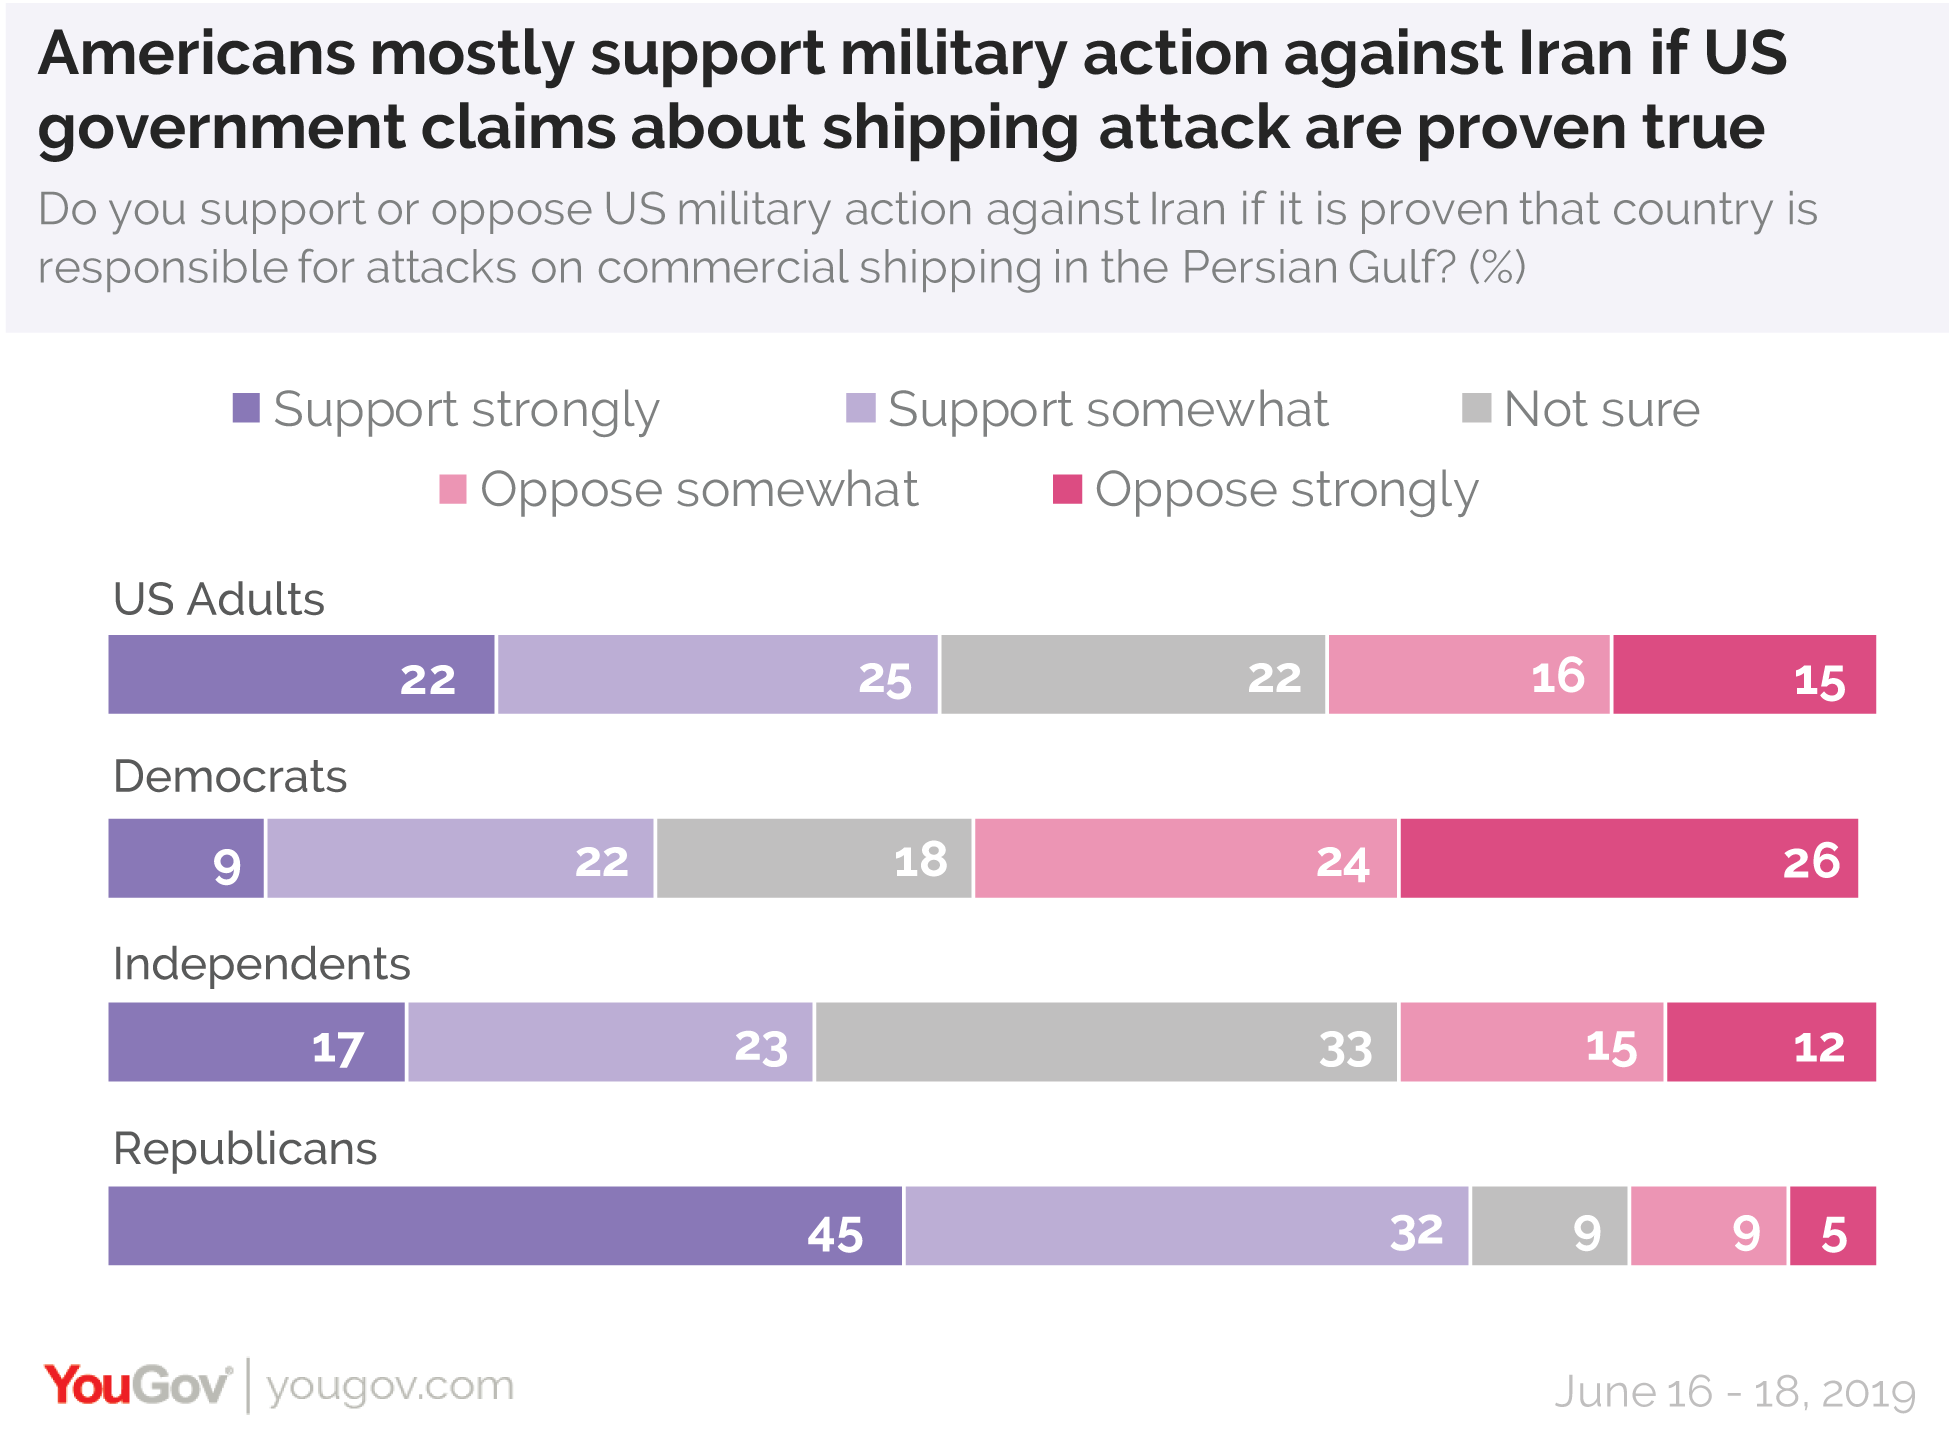 Americans mostly support military action against Iran if US government claims about shipping attack are proven true